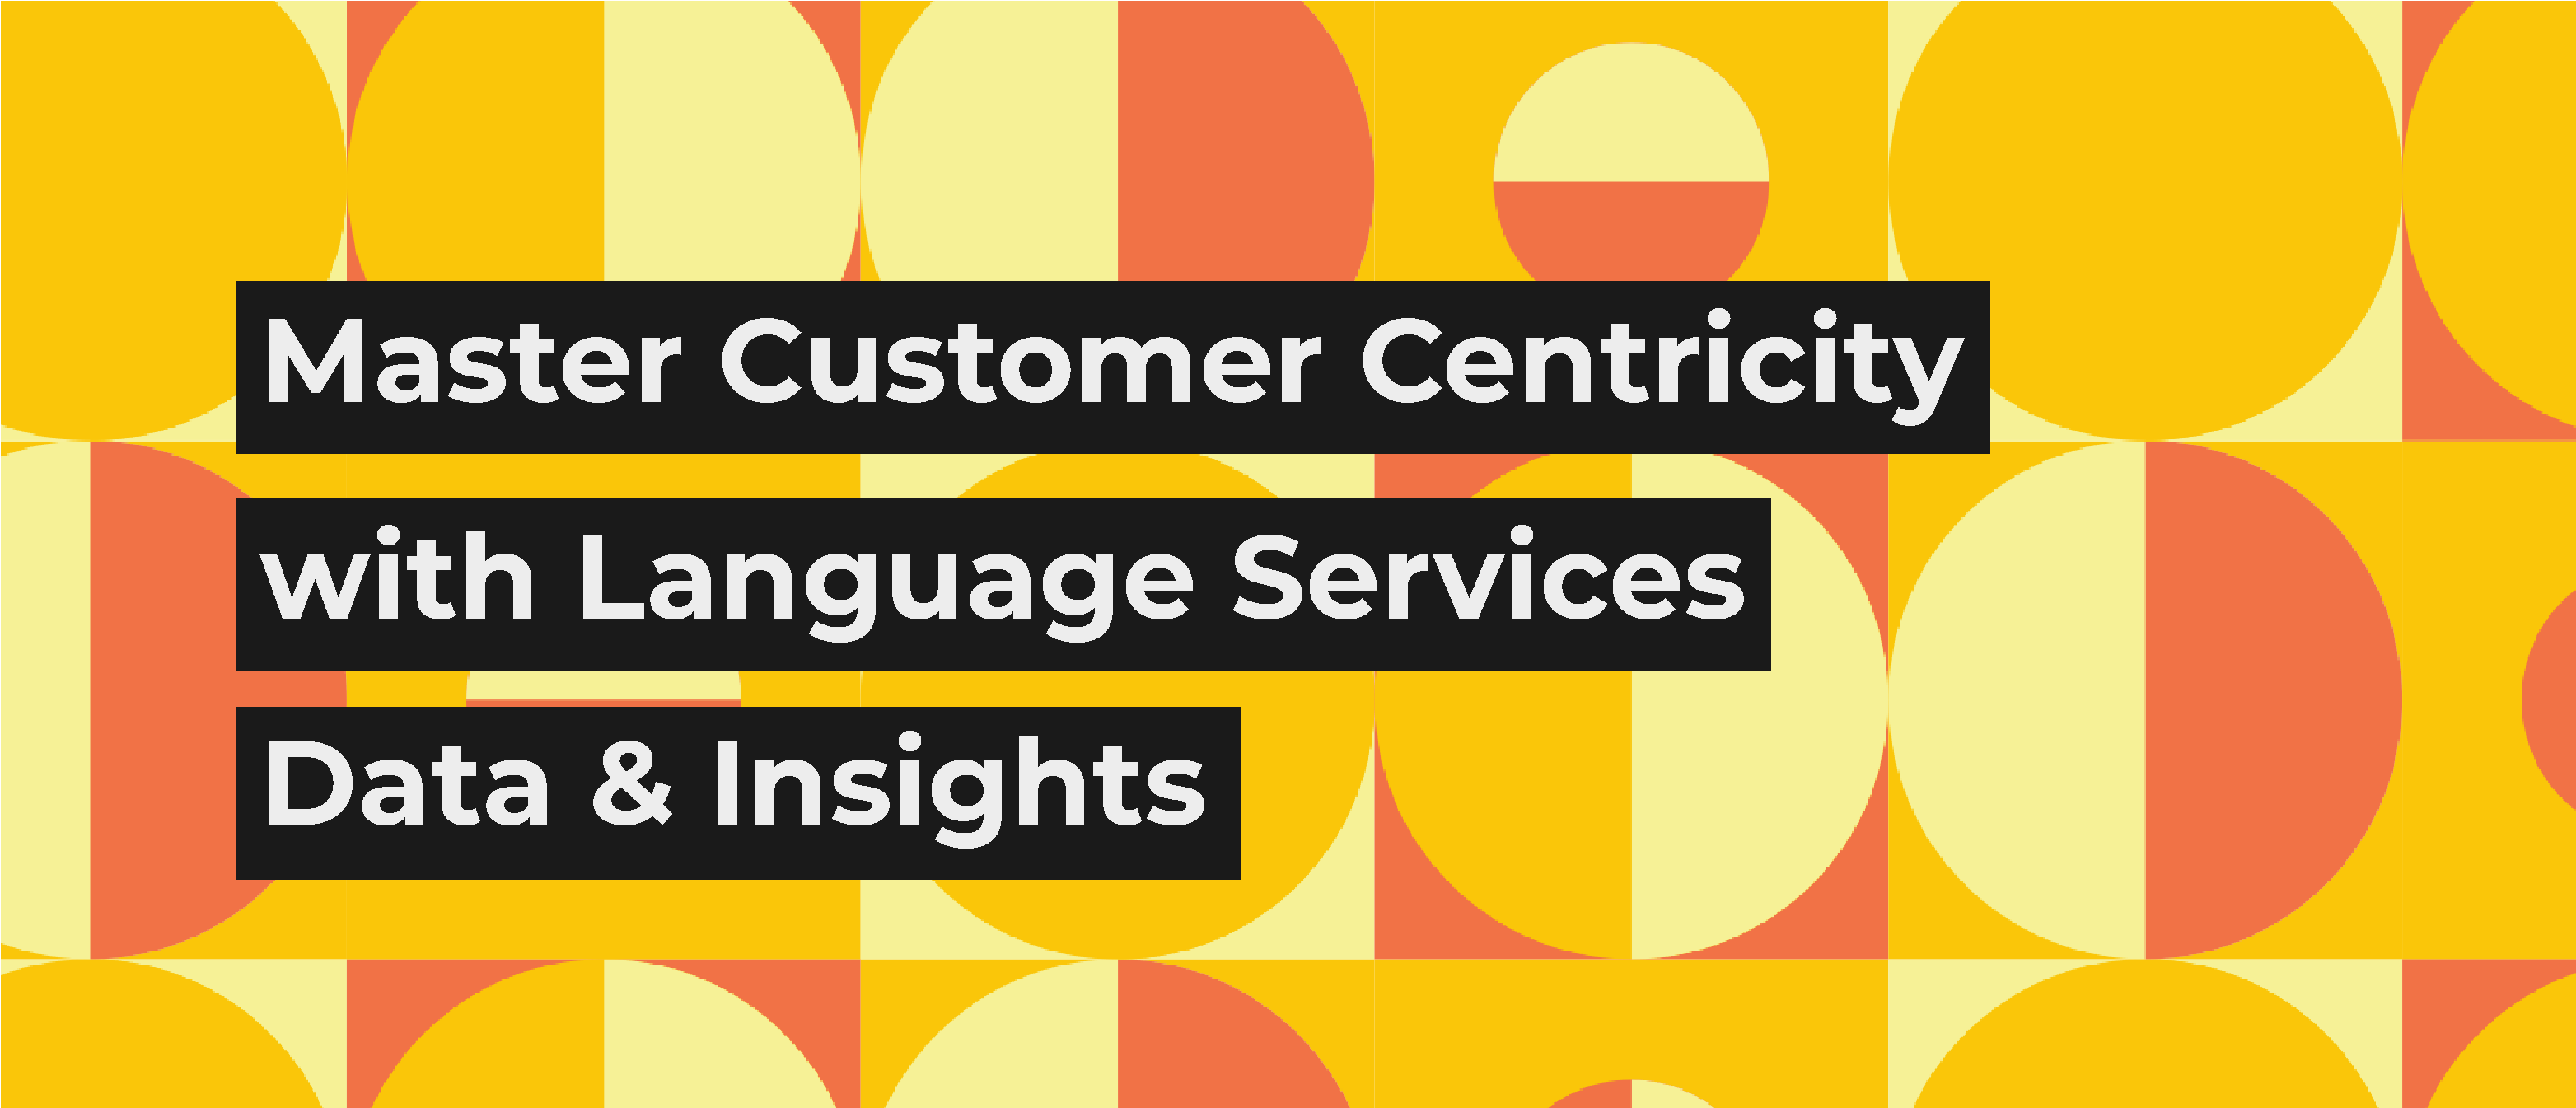 Mastering Customer Centricity with Language Data & Insights